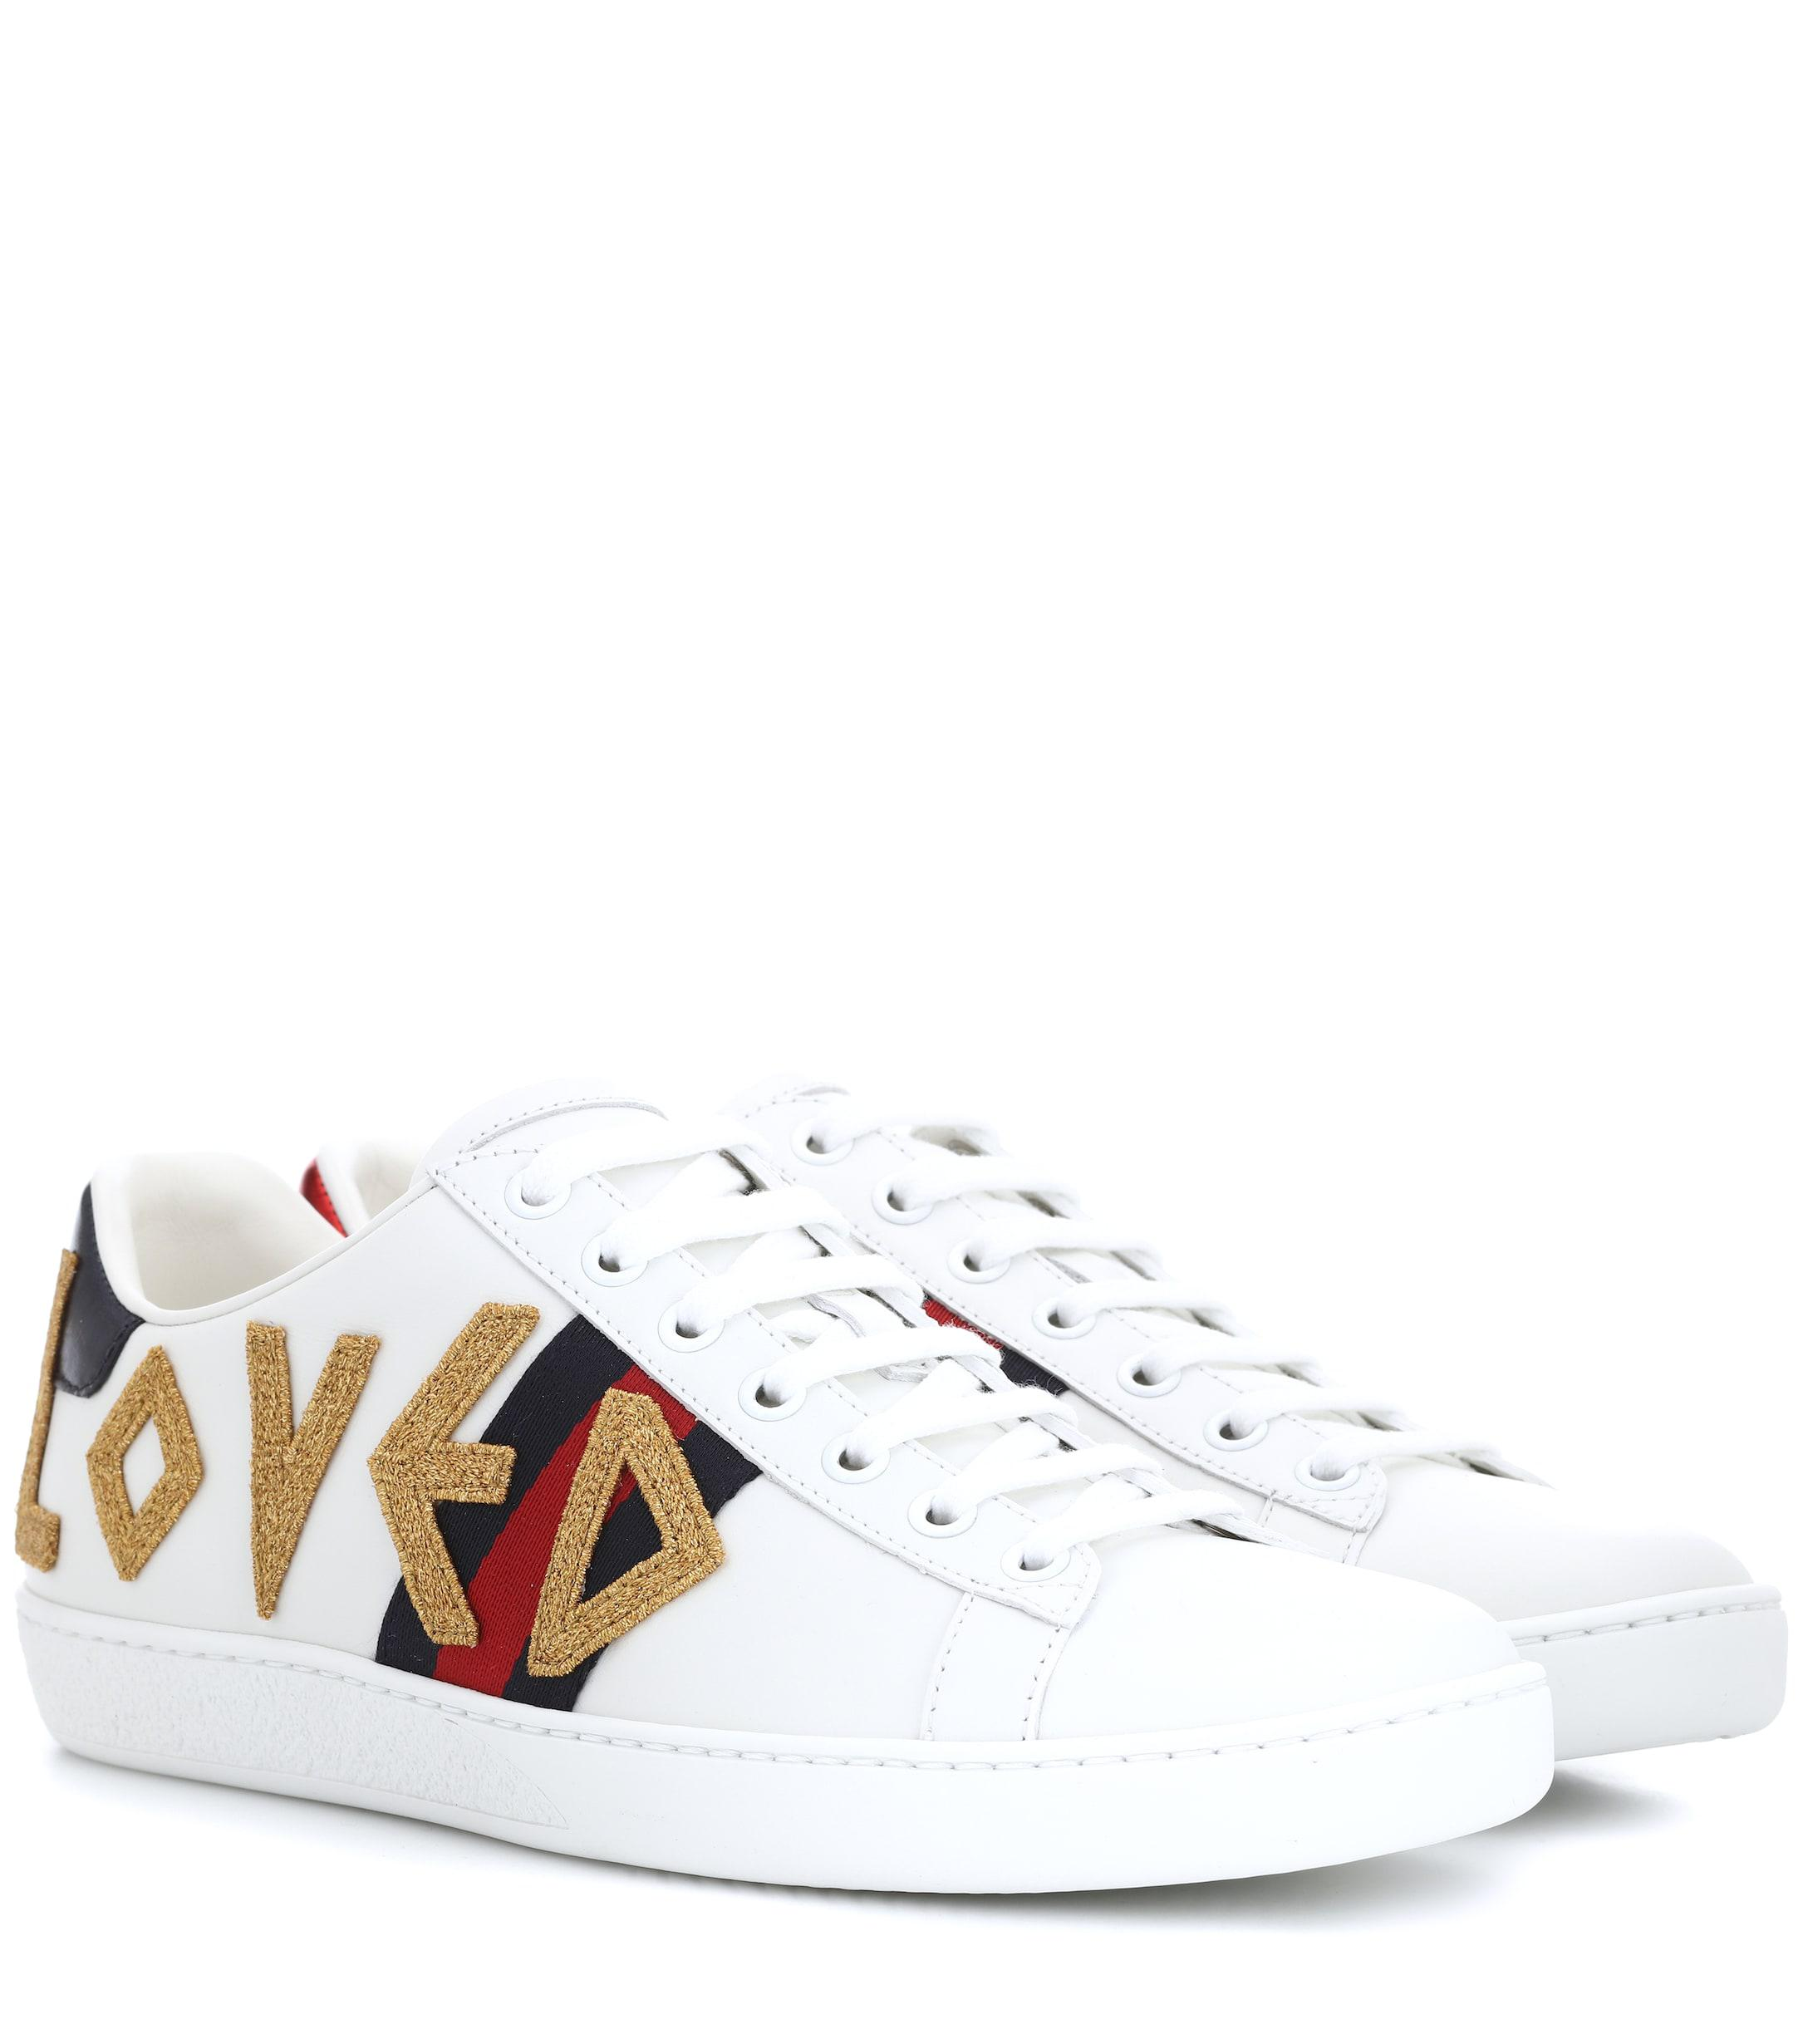 a3574f933044 Gucci. Women s Ace Leather Sneakers.  670 From Mytheresa